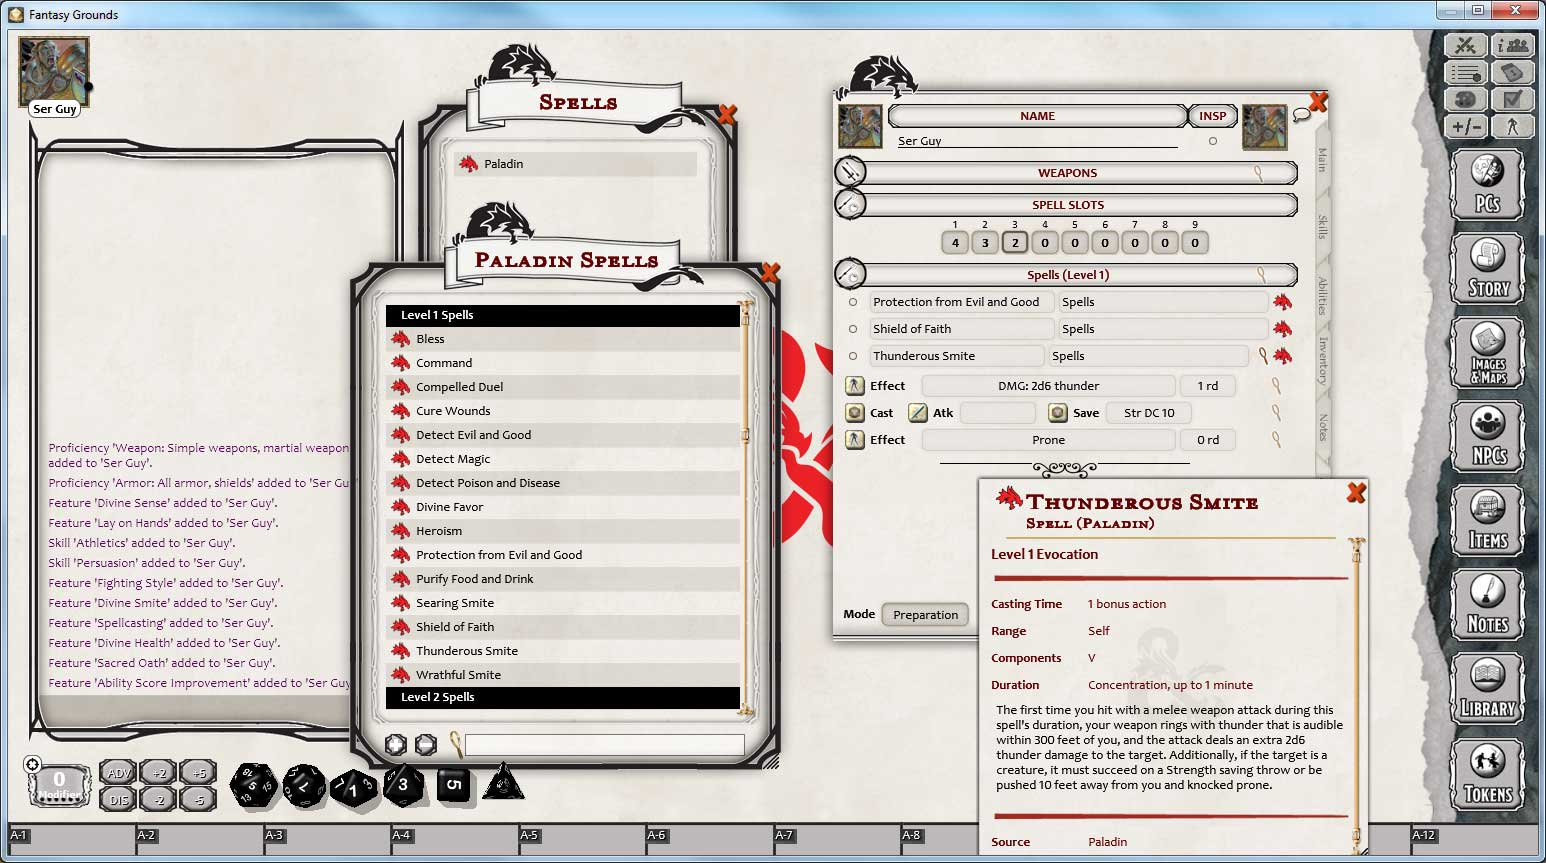 D&D Paladin Class Pack for Fantasy Grounds